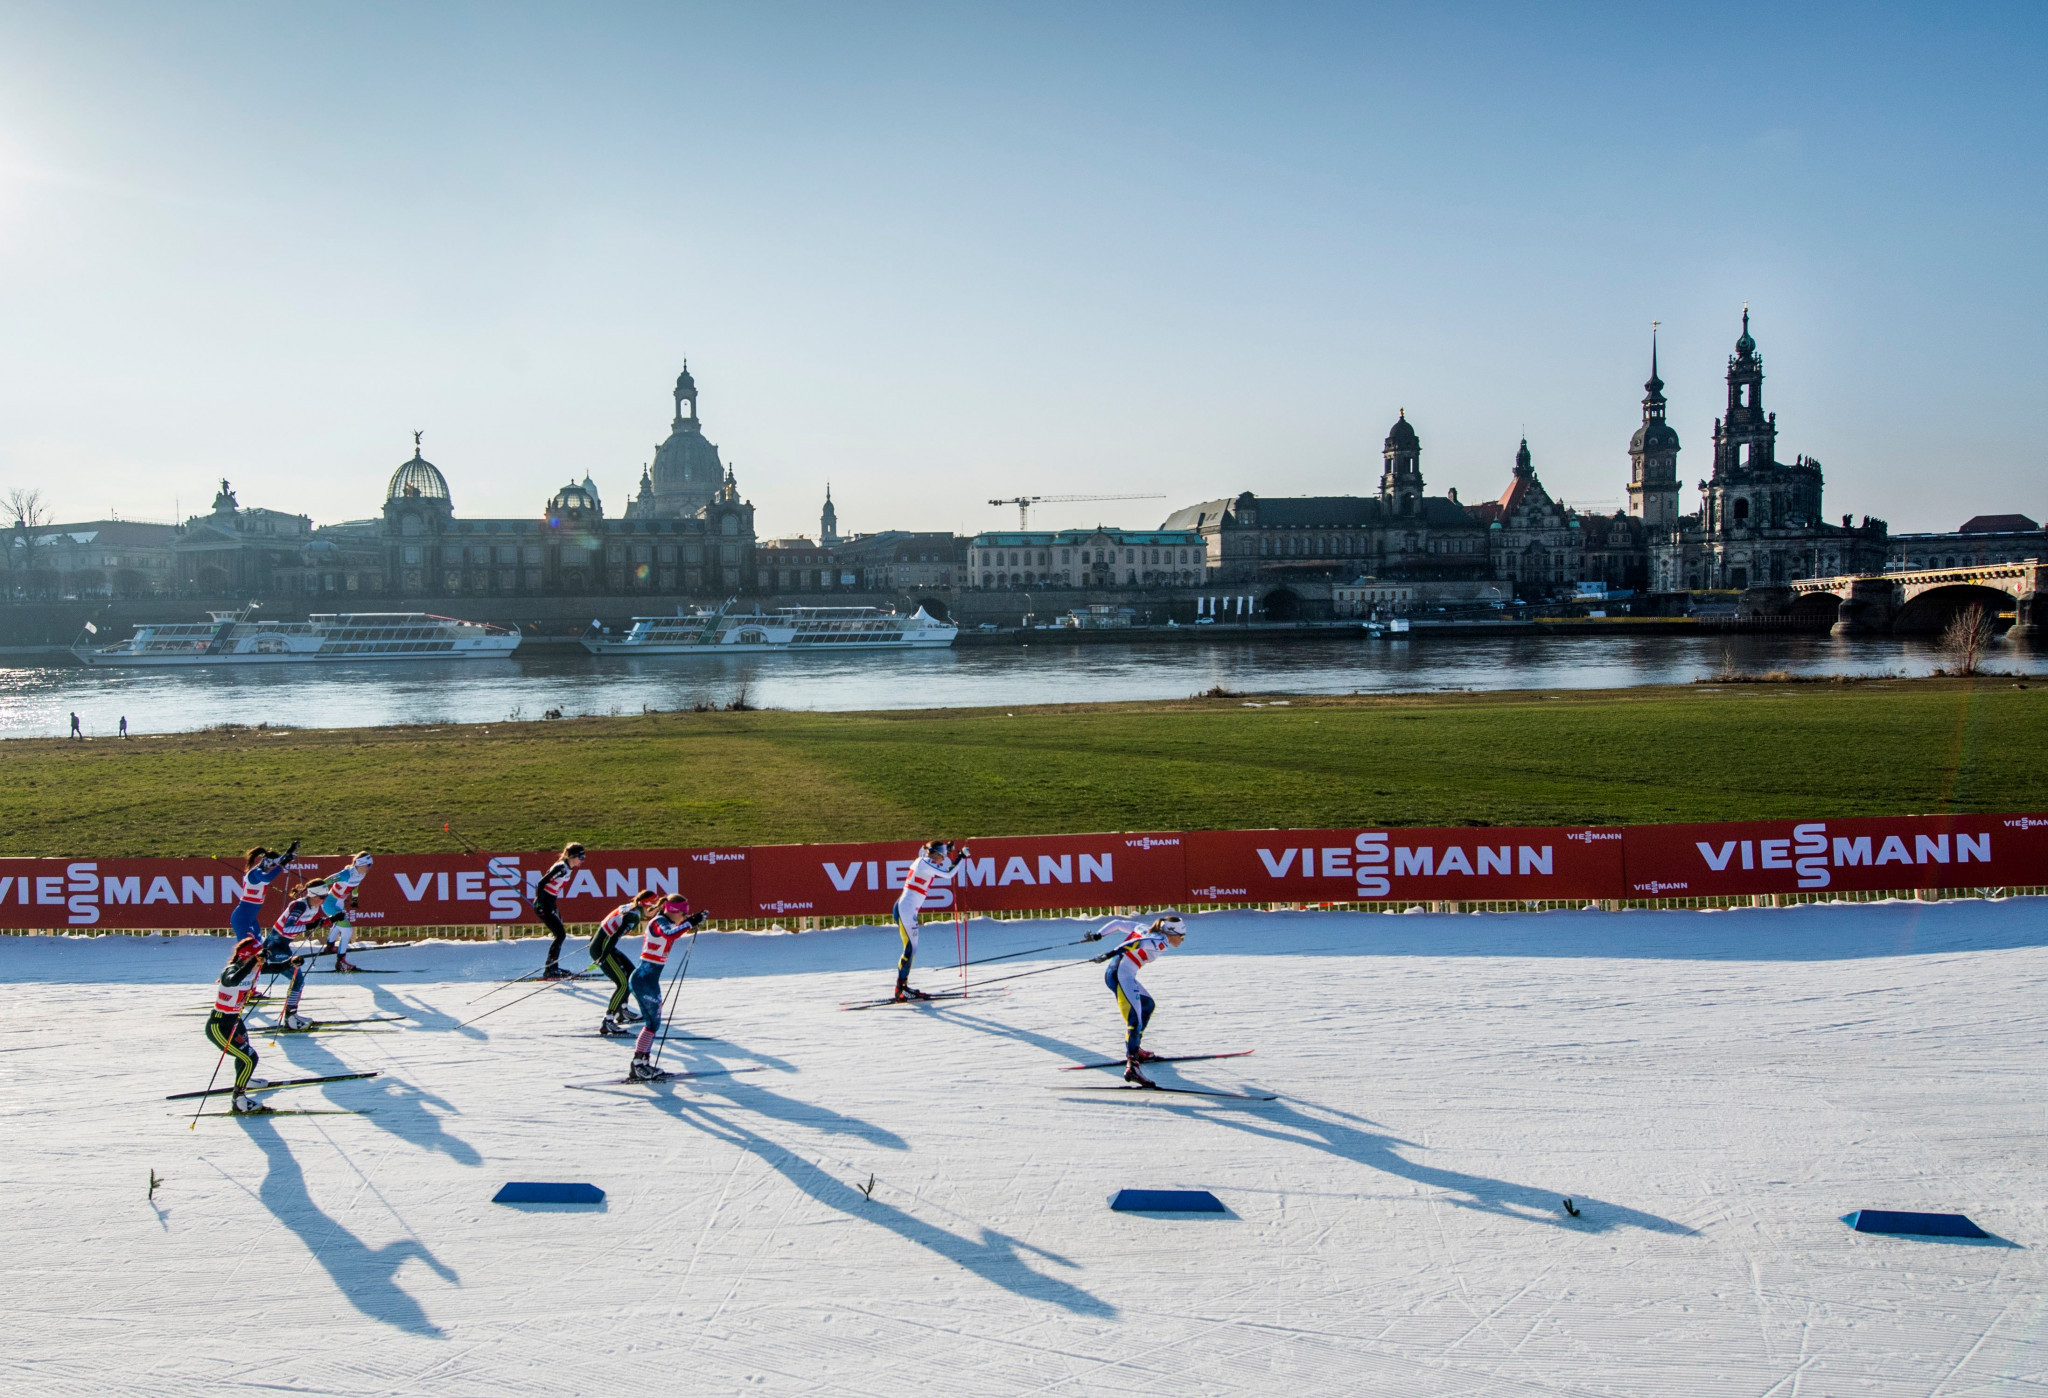 The Para cross-country sprint races will take place on a track in front of the Dresden skyline ©Getty Images